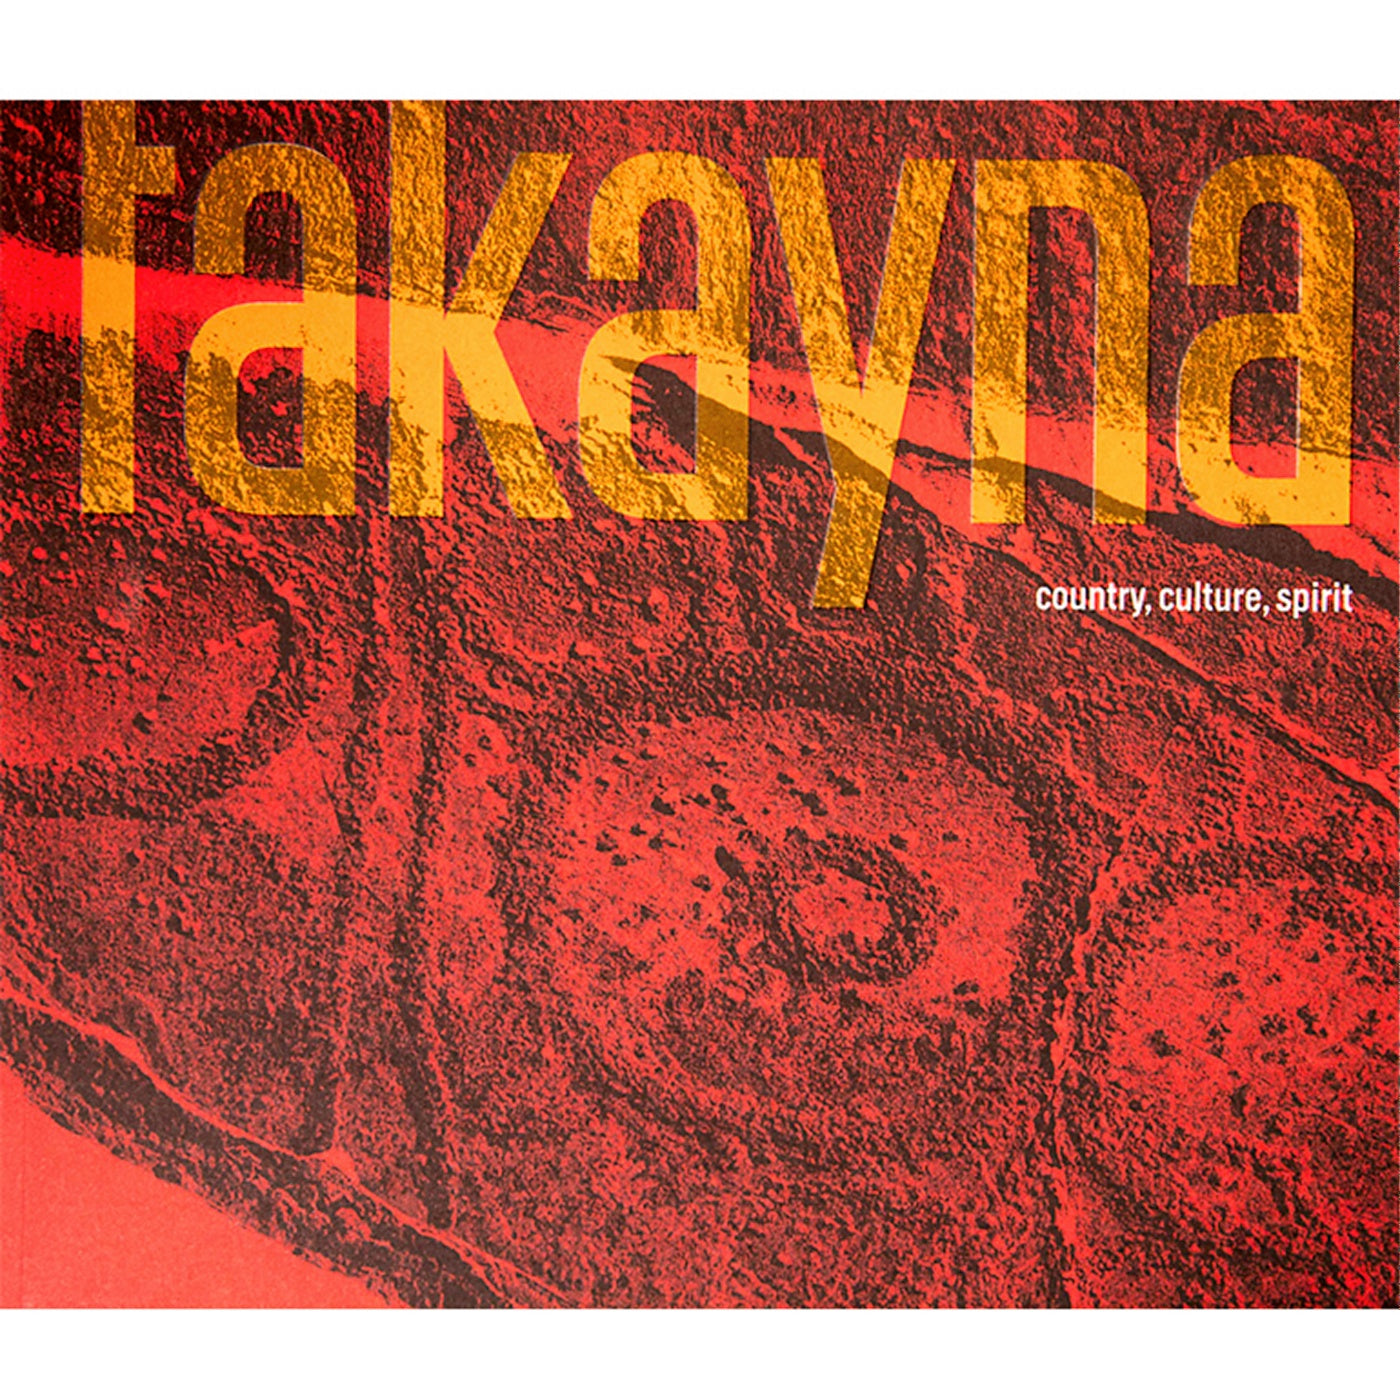 takayna - country, culture, spirit